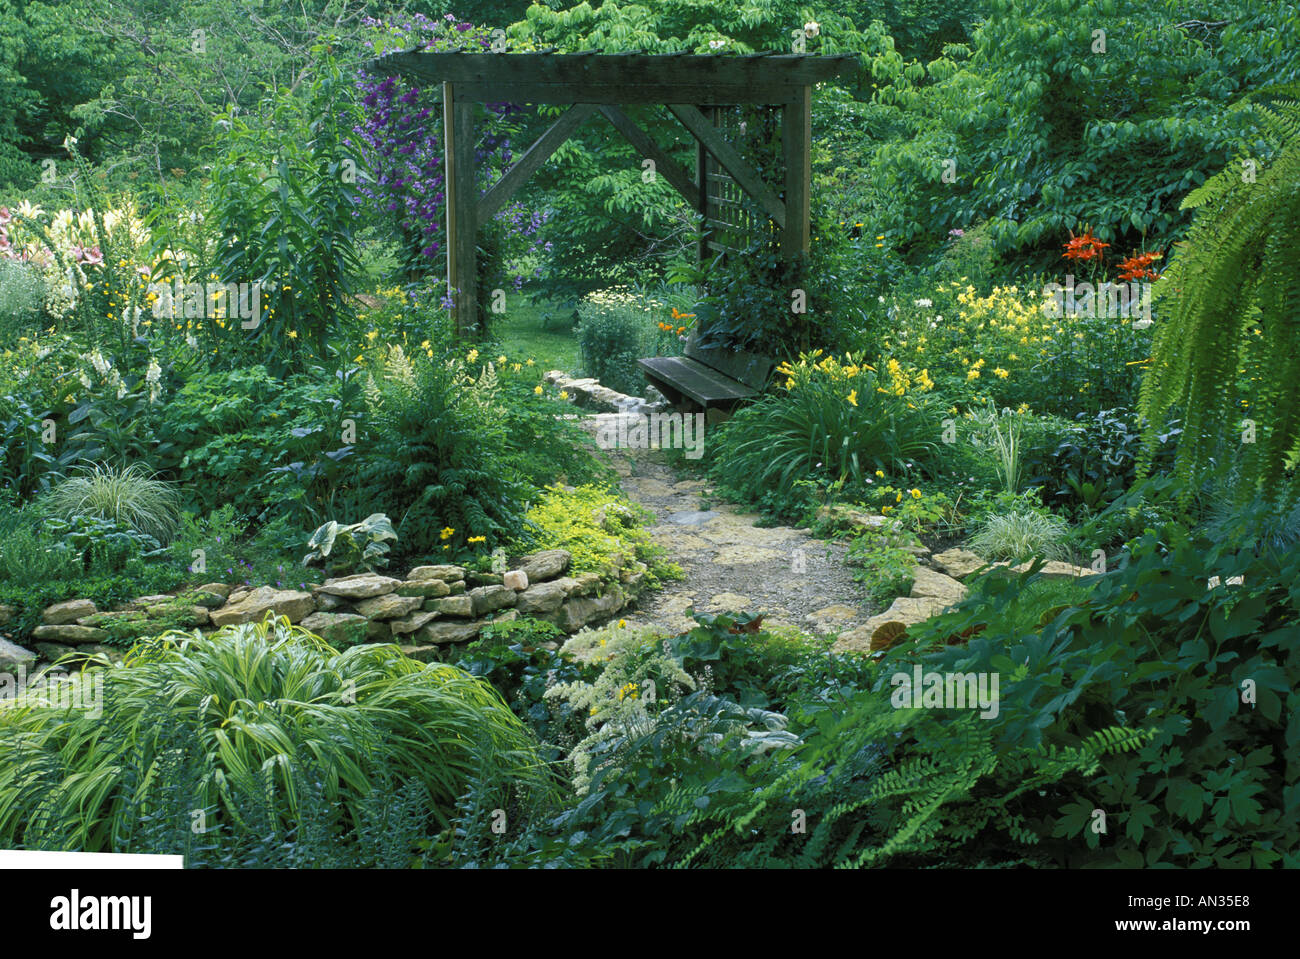 Flagstone Path With Stone Wall In Flower Garden Leads